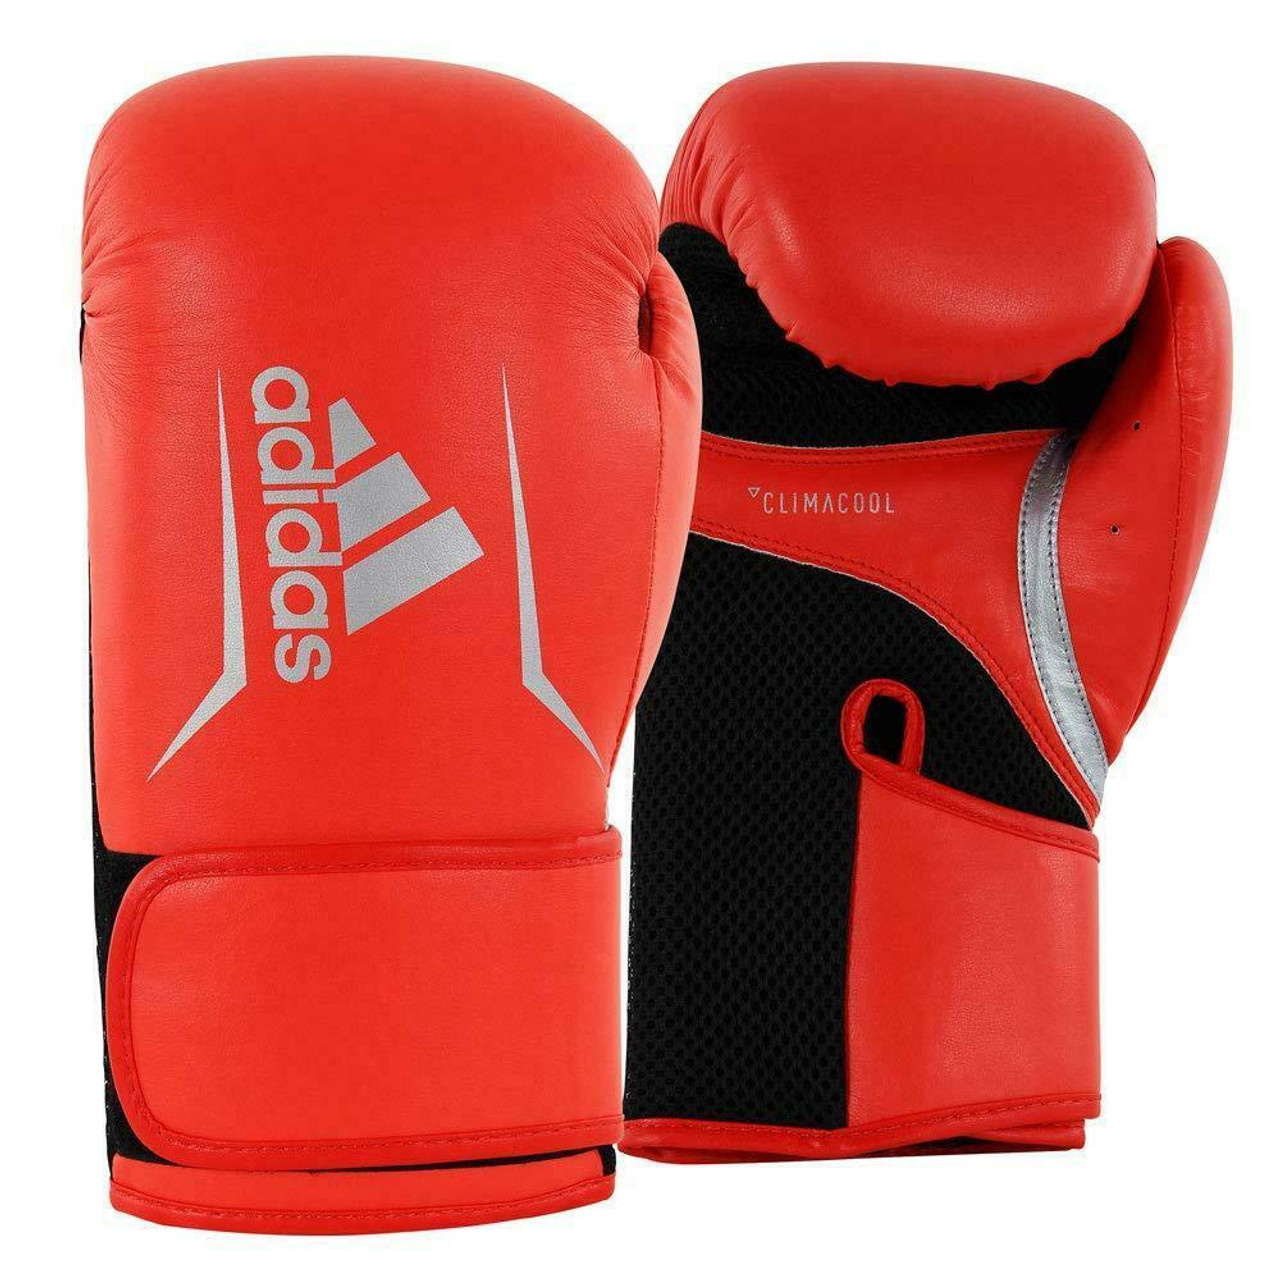 Adidas Hybrid 50 Boxing Training Gloves MMA Black//Red In 12oz or 16oz